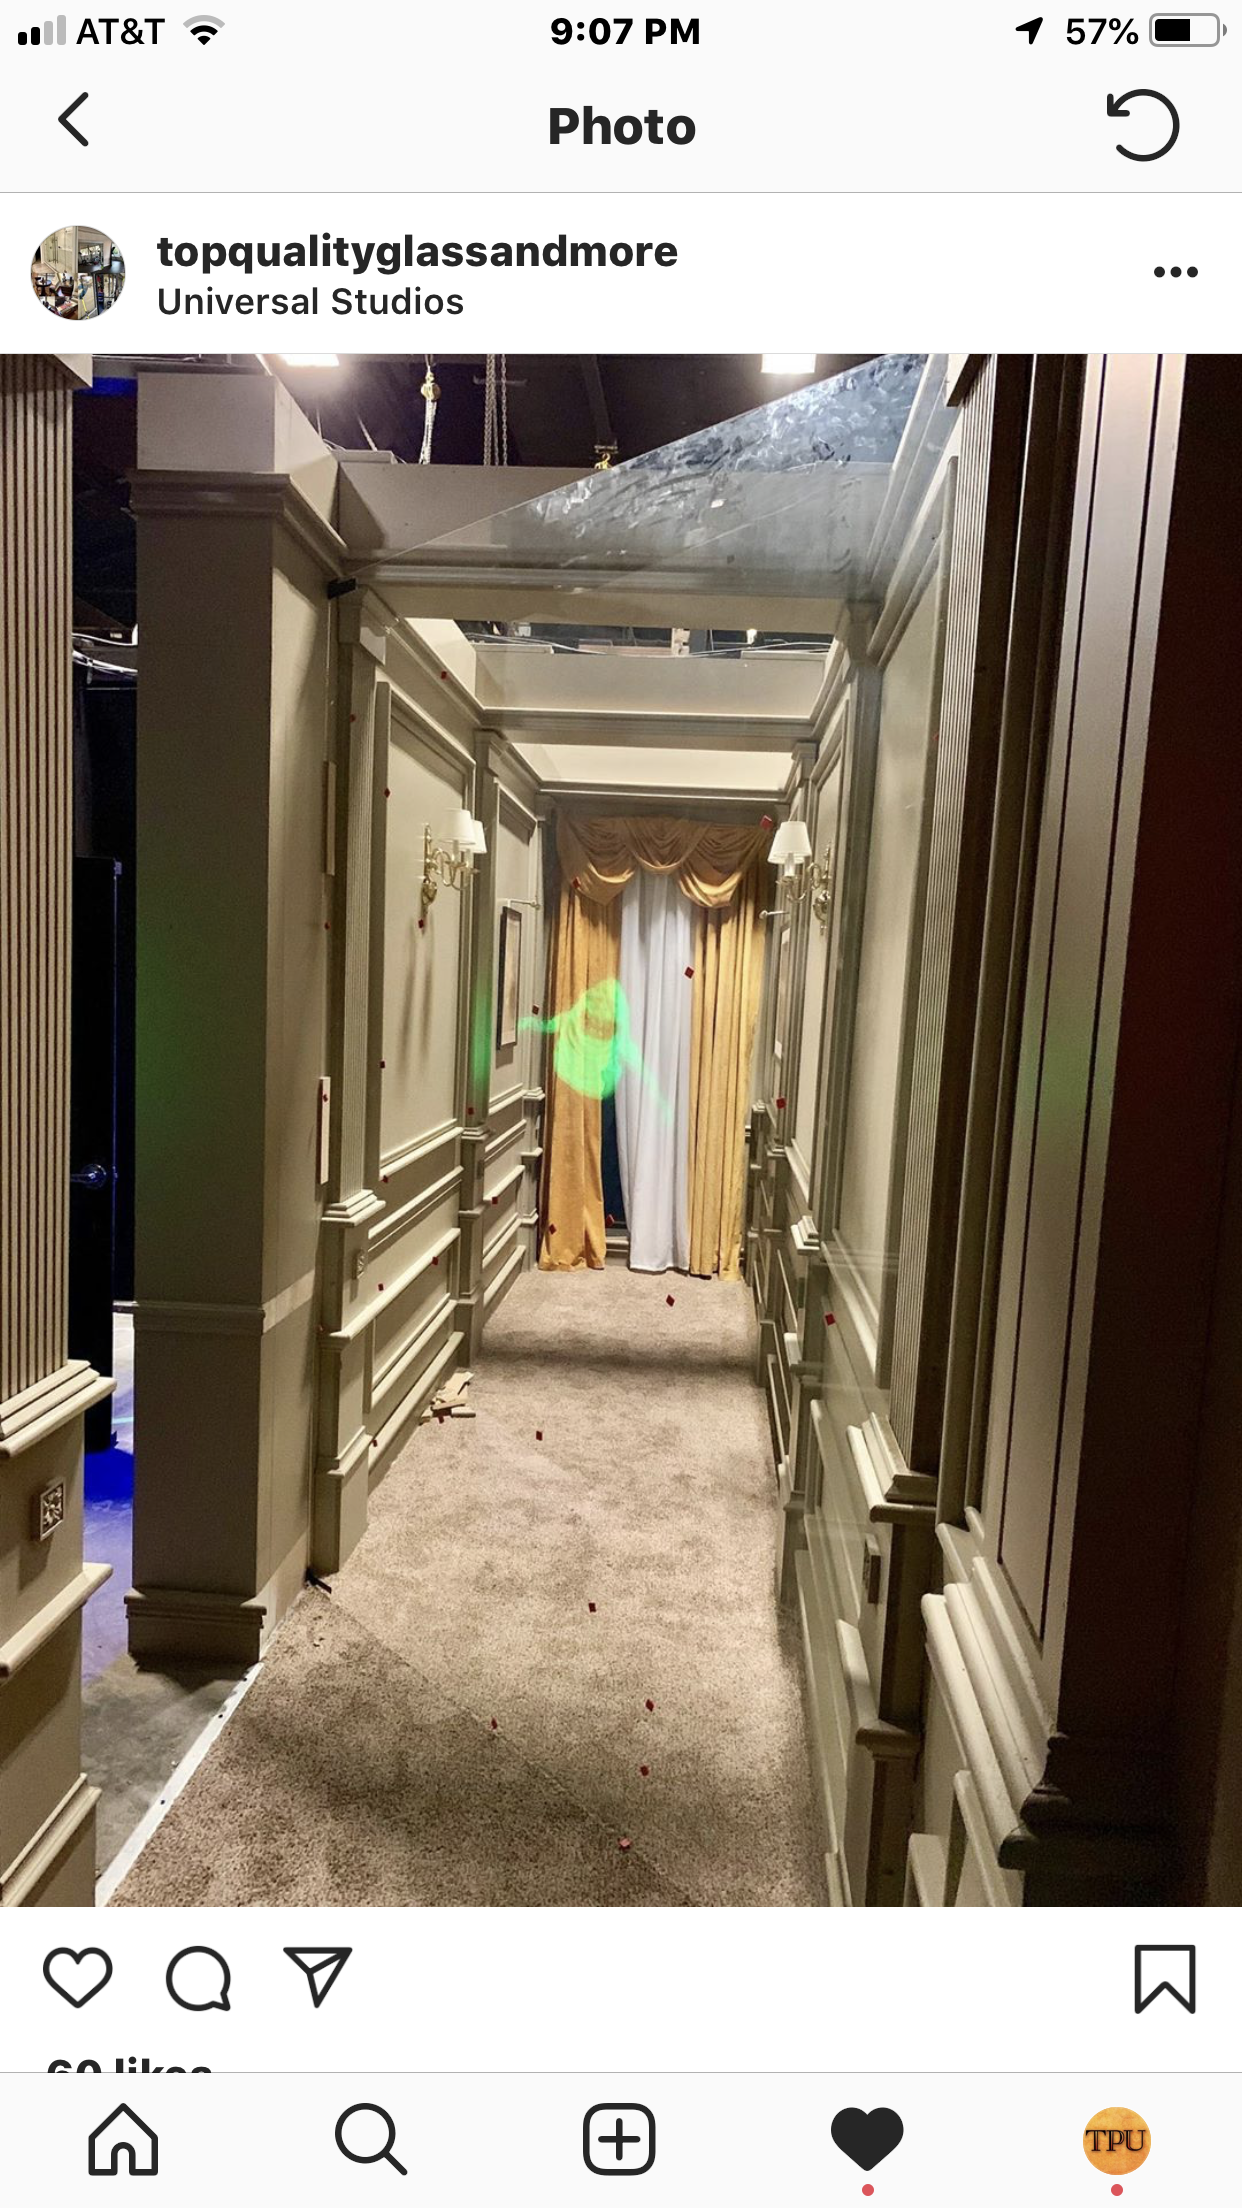 Universal Studios Halloween Horror Nights 2019 Theme.Photo Of Slimer From Ghostbusters Haunted House Leaks Ahead Of